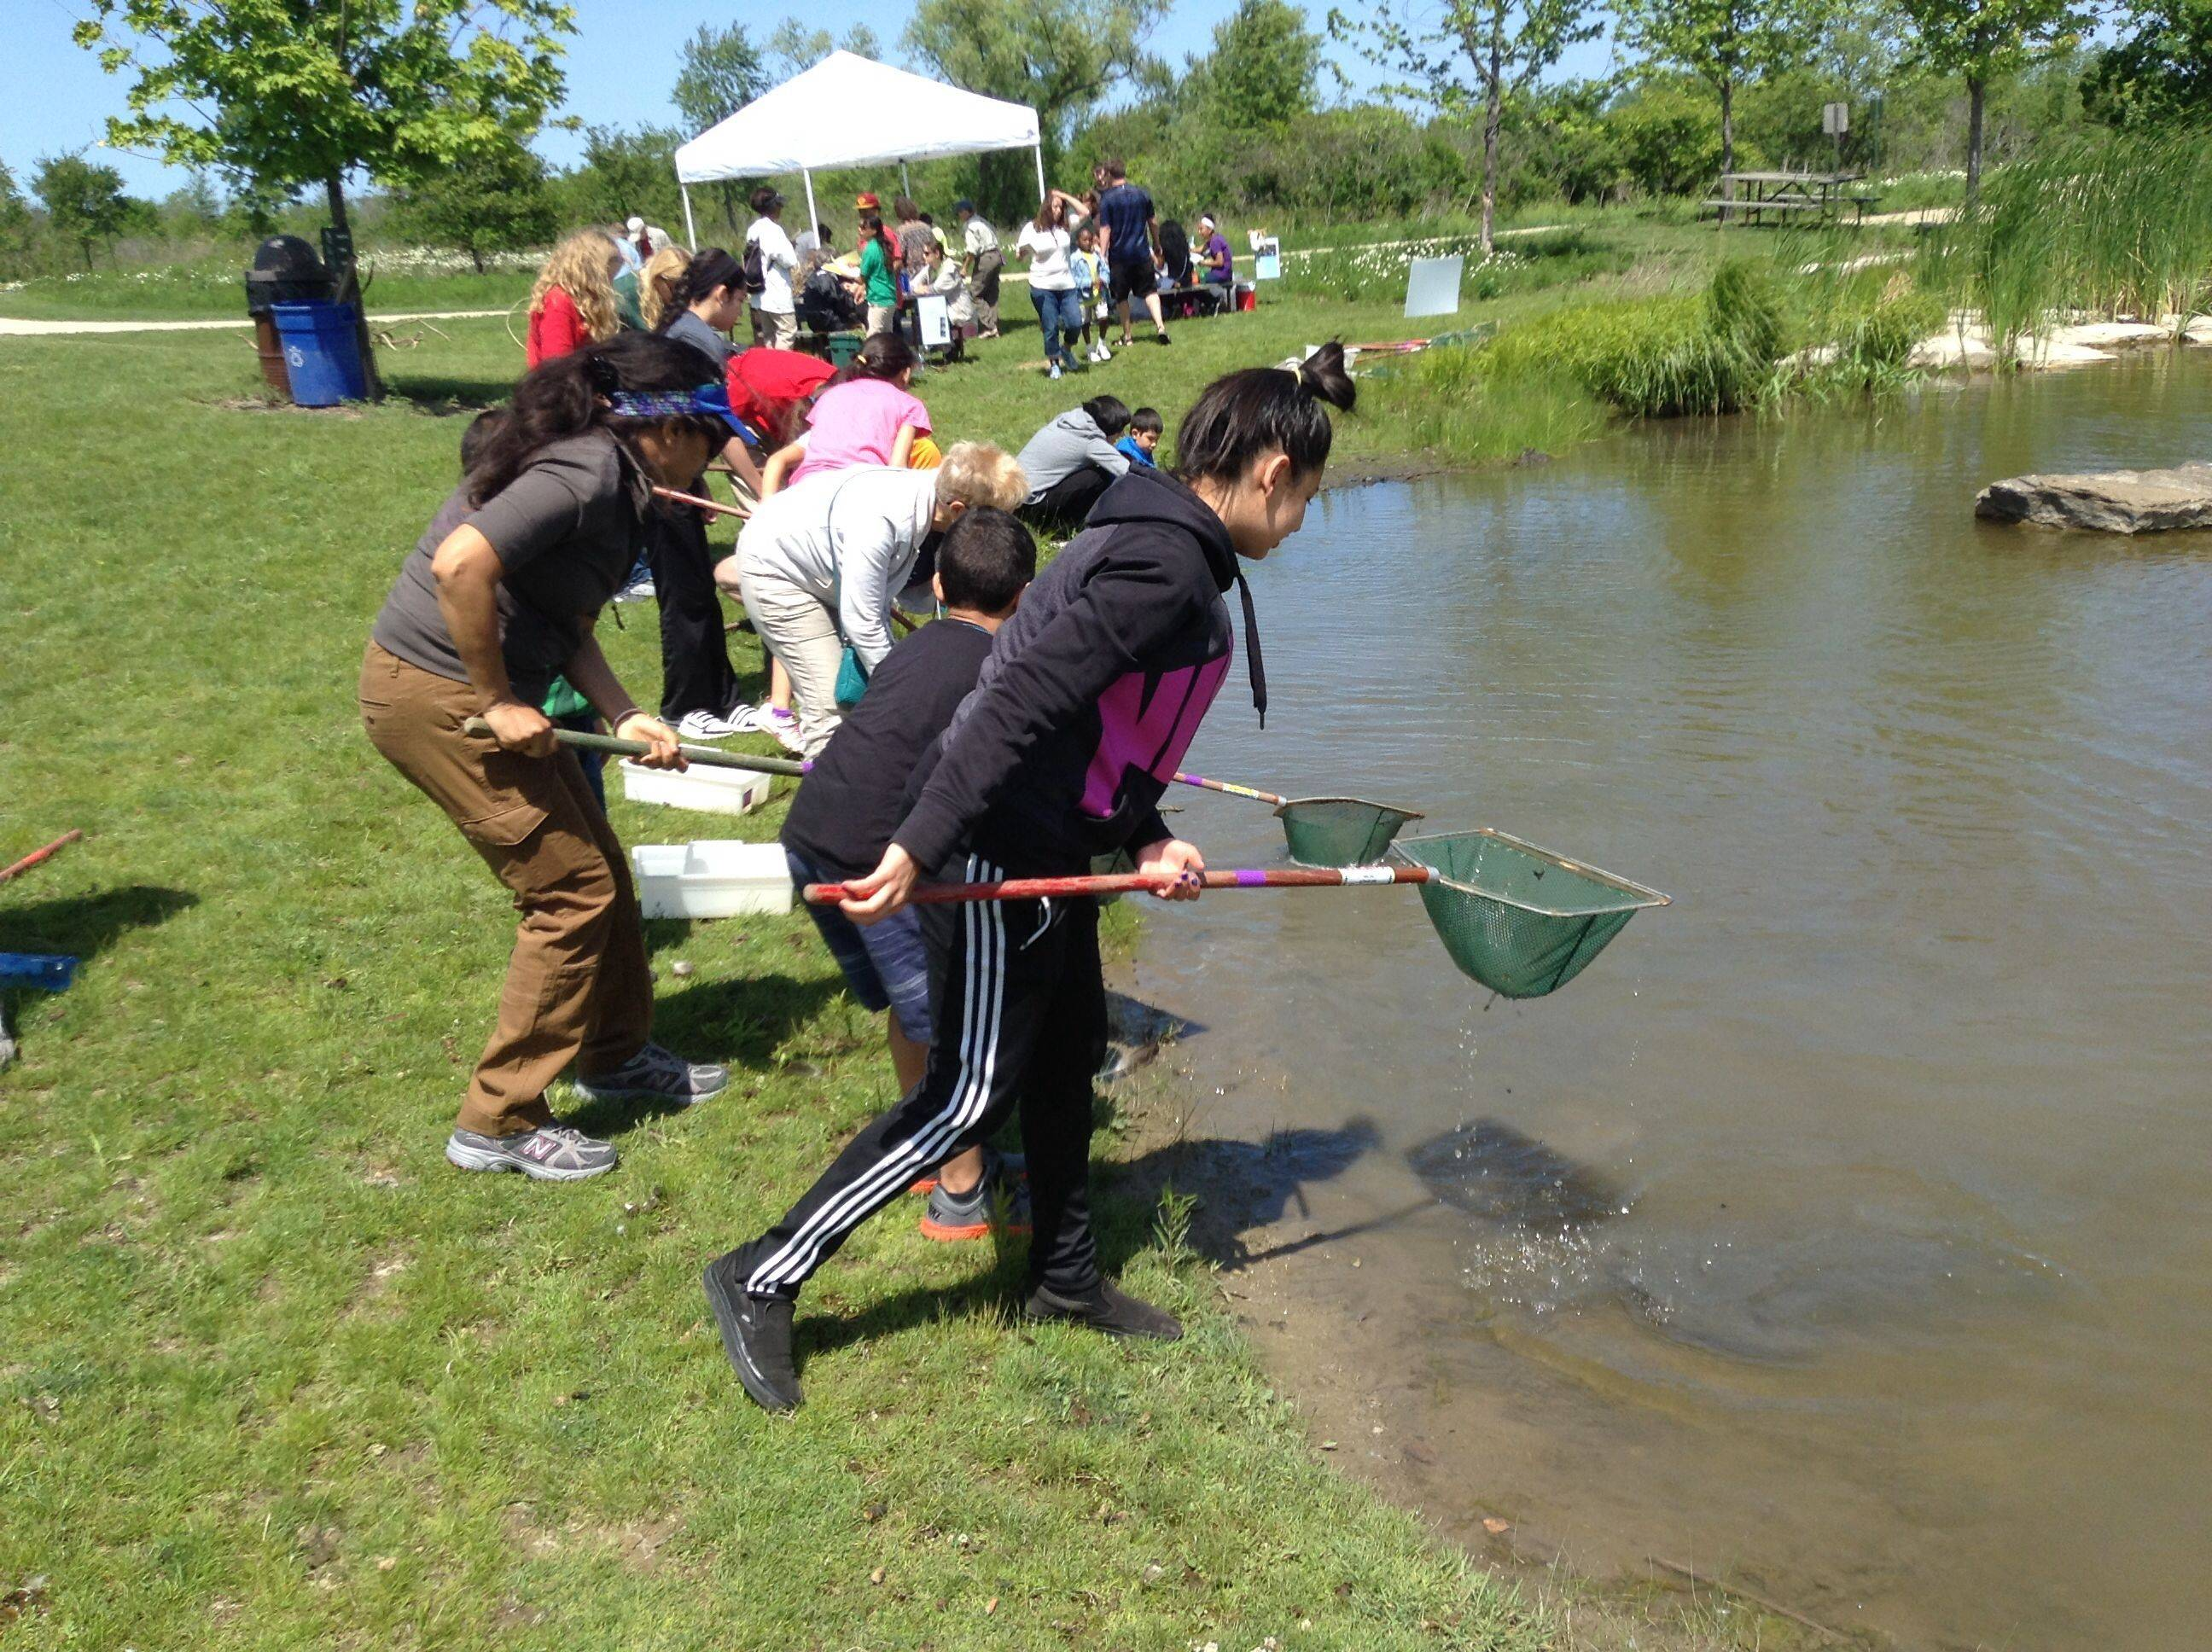 Children taking part in Sunday's Kids Nature Funfest at the Greenbelt Cultural Center in North Chicago ready their nets for some pond scooping Sunday afternoon. The nets were dipped into the pond's muddy bottom to see what kinds of insects lived in the muck.